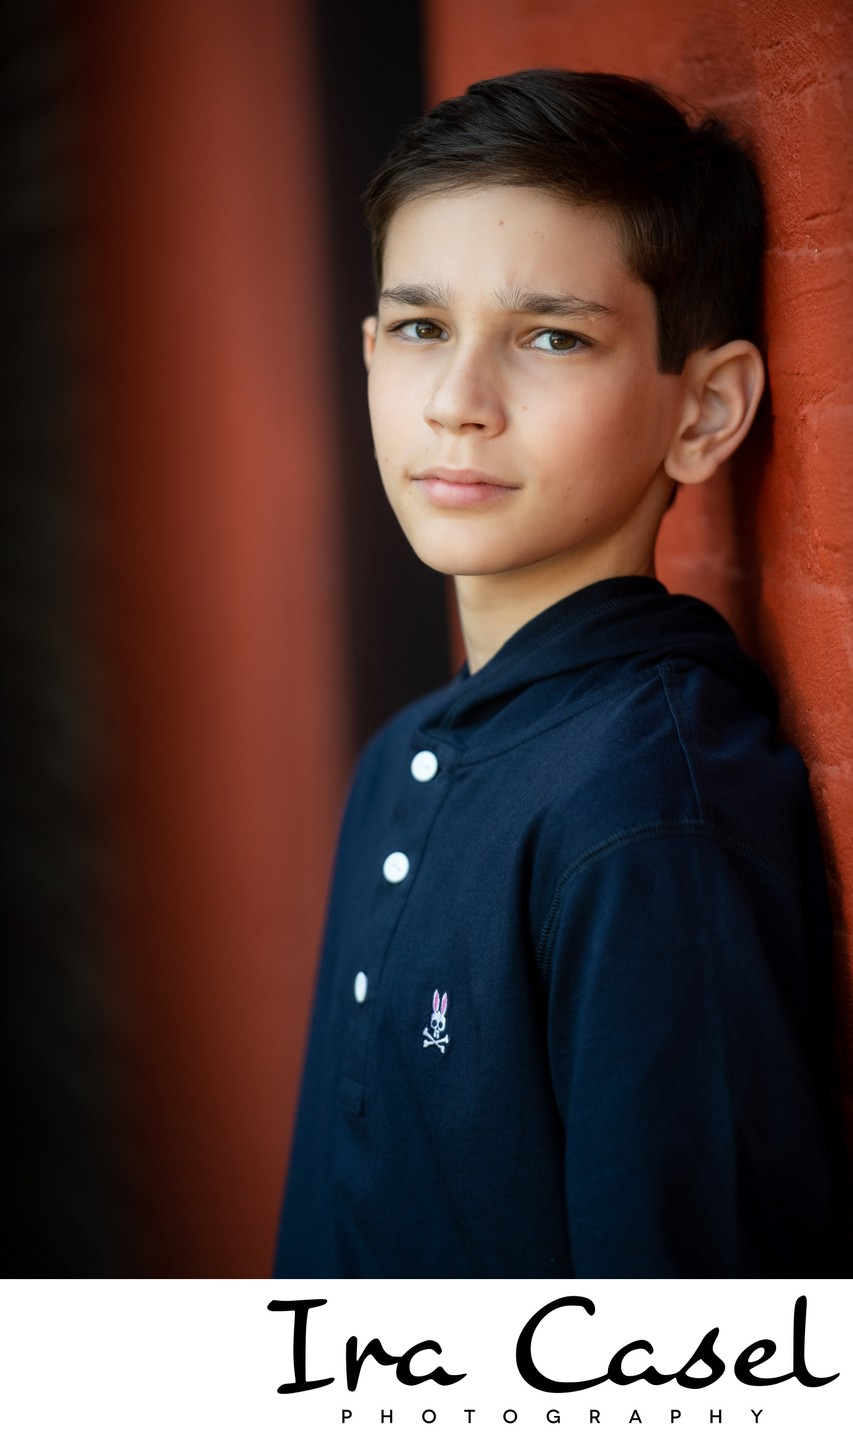 Pre-Bar Mitzvah Portrait Photographer NJ